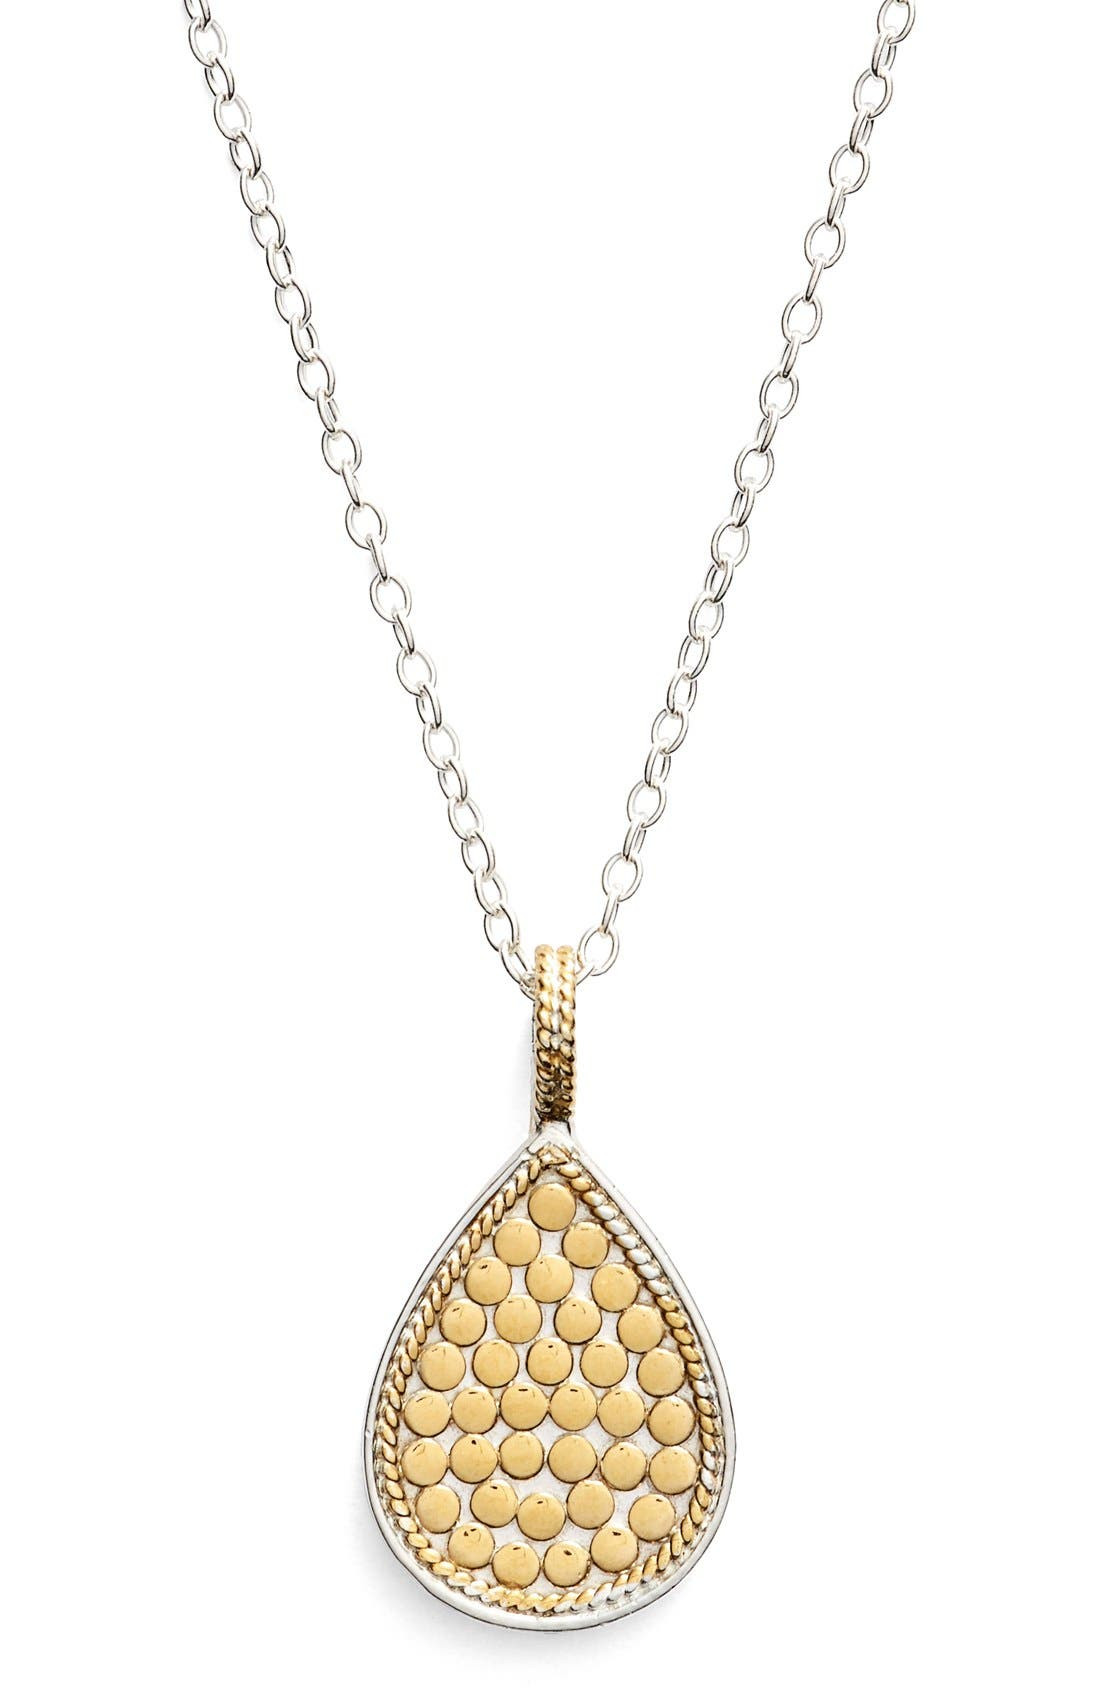 'Gili' Reversible Teardrop Pendant Necklace,                             Main thumbnail 1, color,                             GOLD/ SILVER